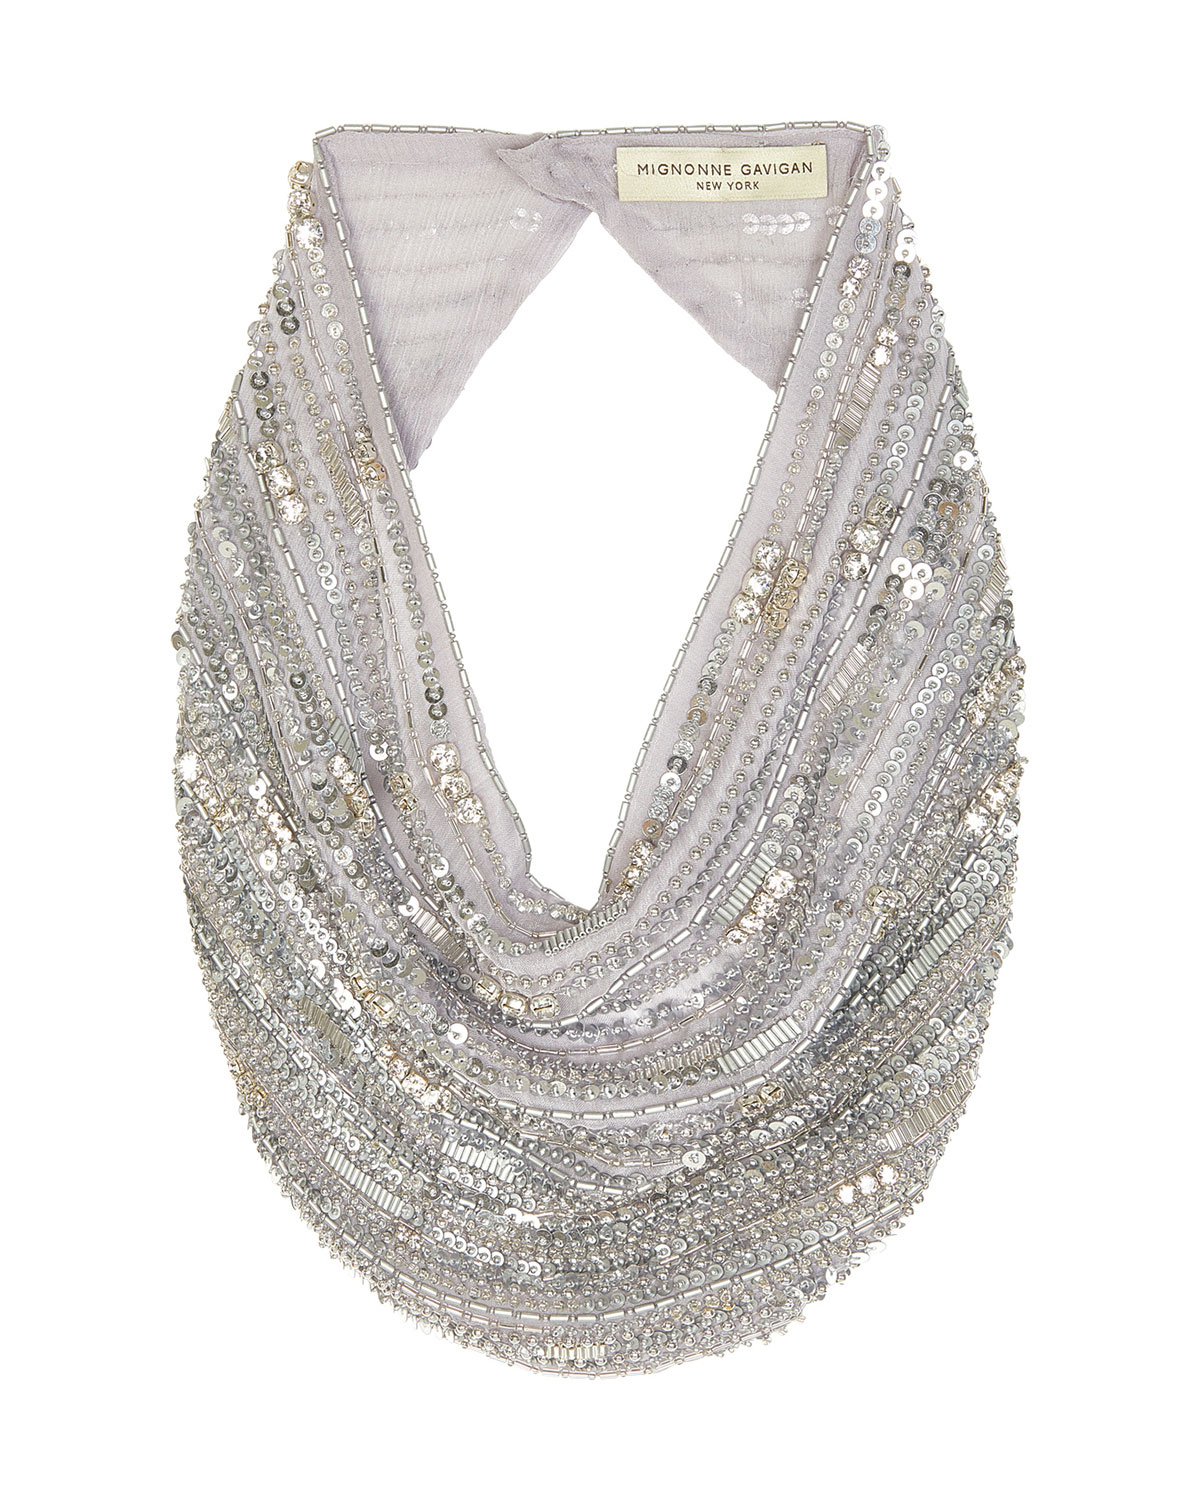 Mignonne Gavigan Accessories PERRY LE CHARLOT BEADED SCARF NECKLACE, SILVER